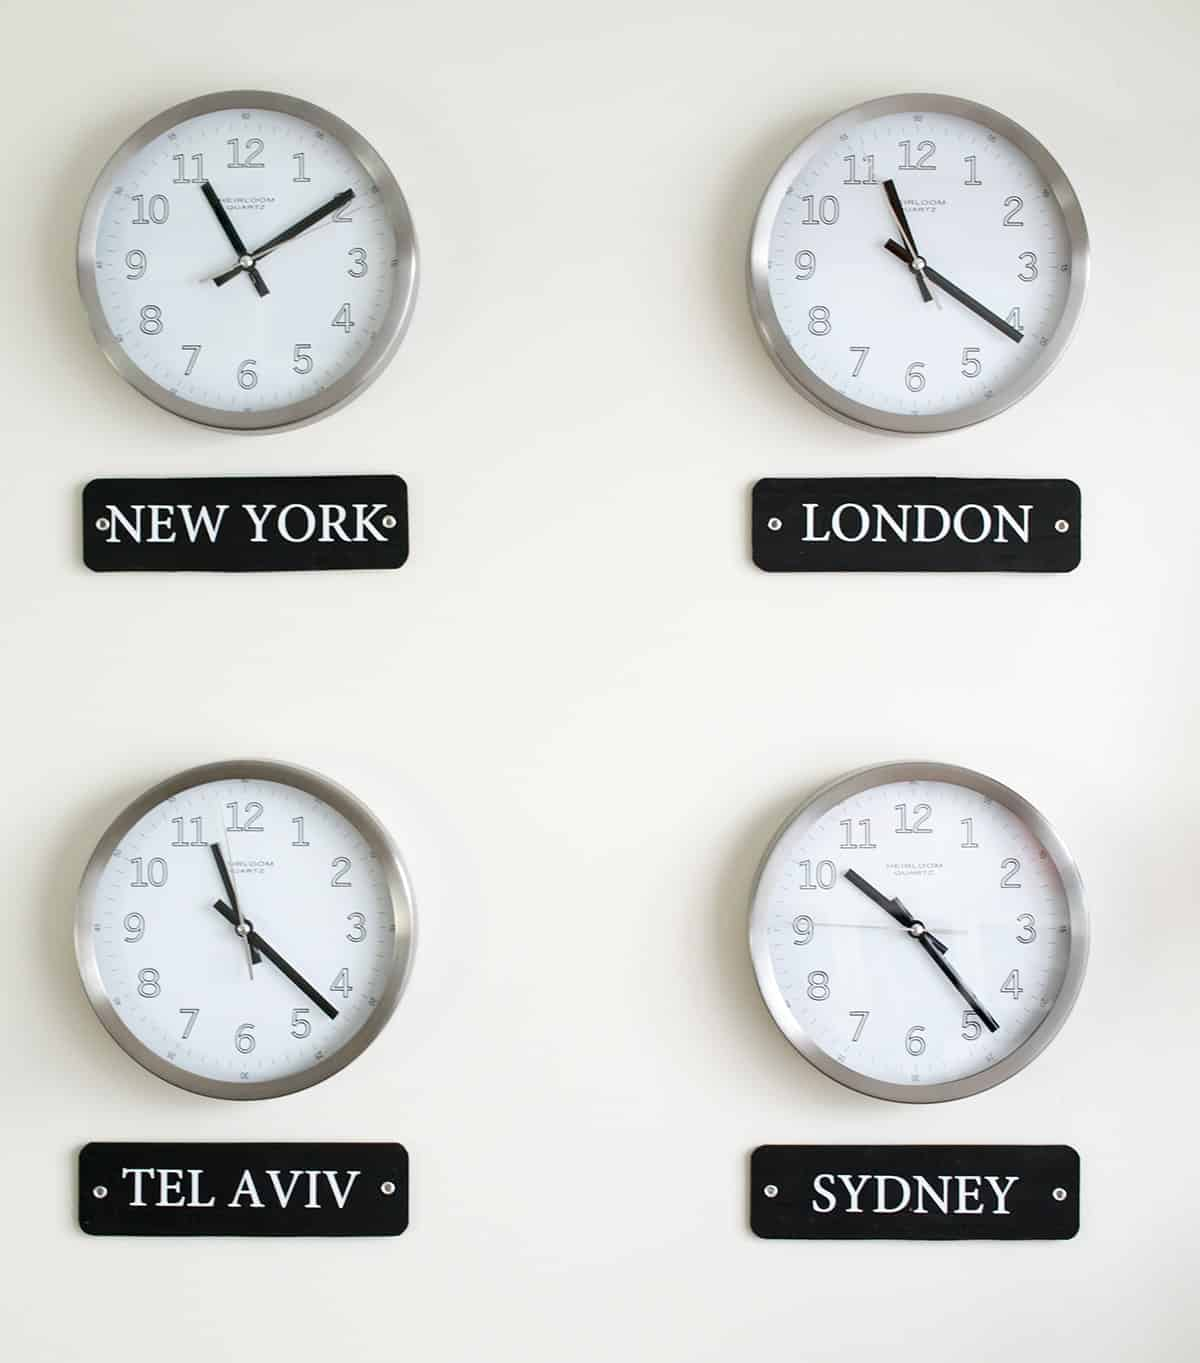 International World Clock Wall Display with black mounted city name labels underneath.